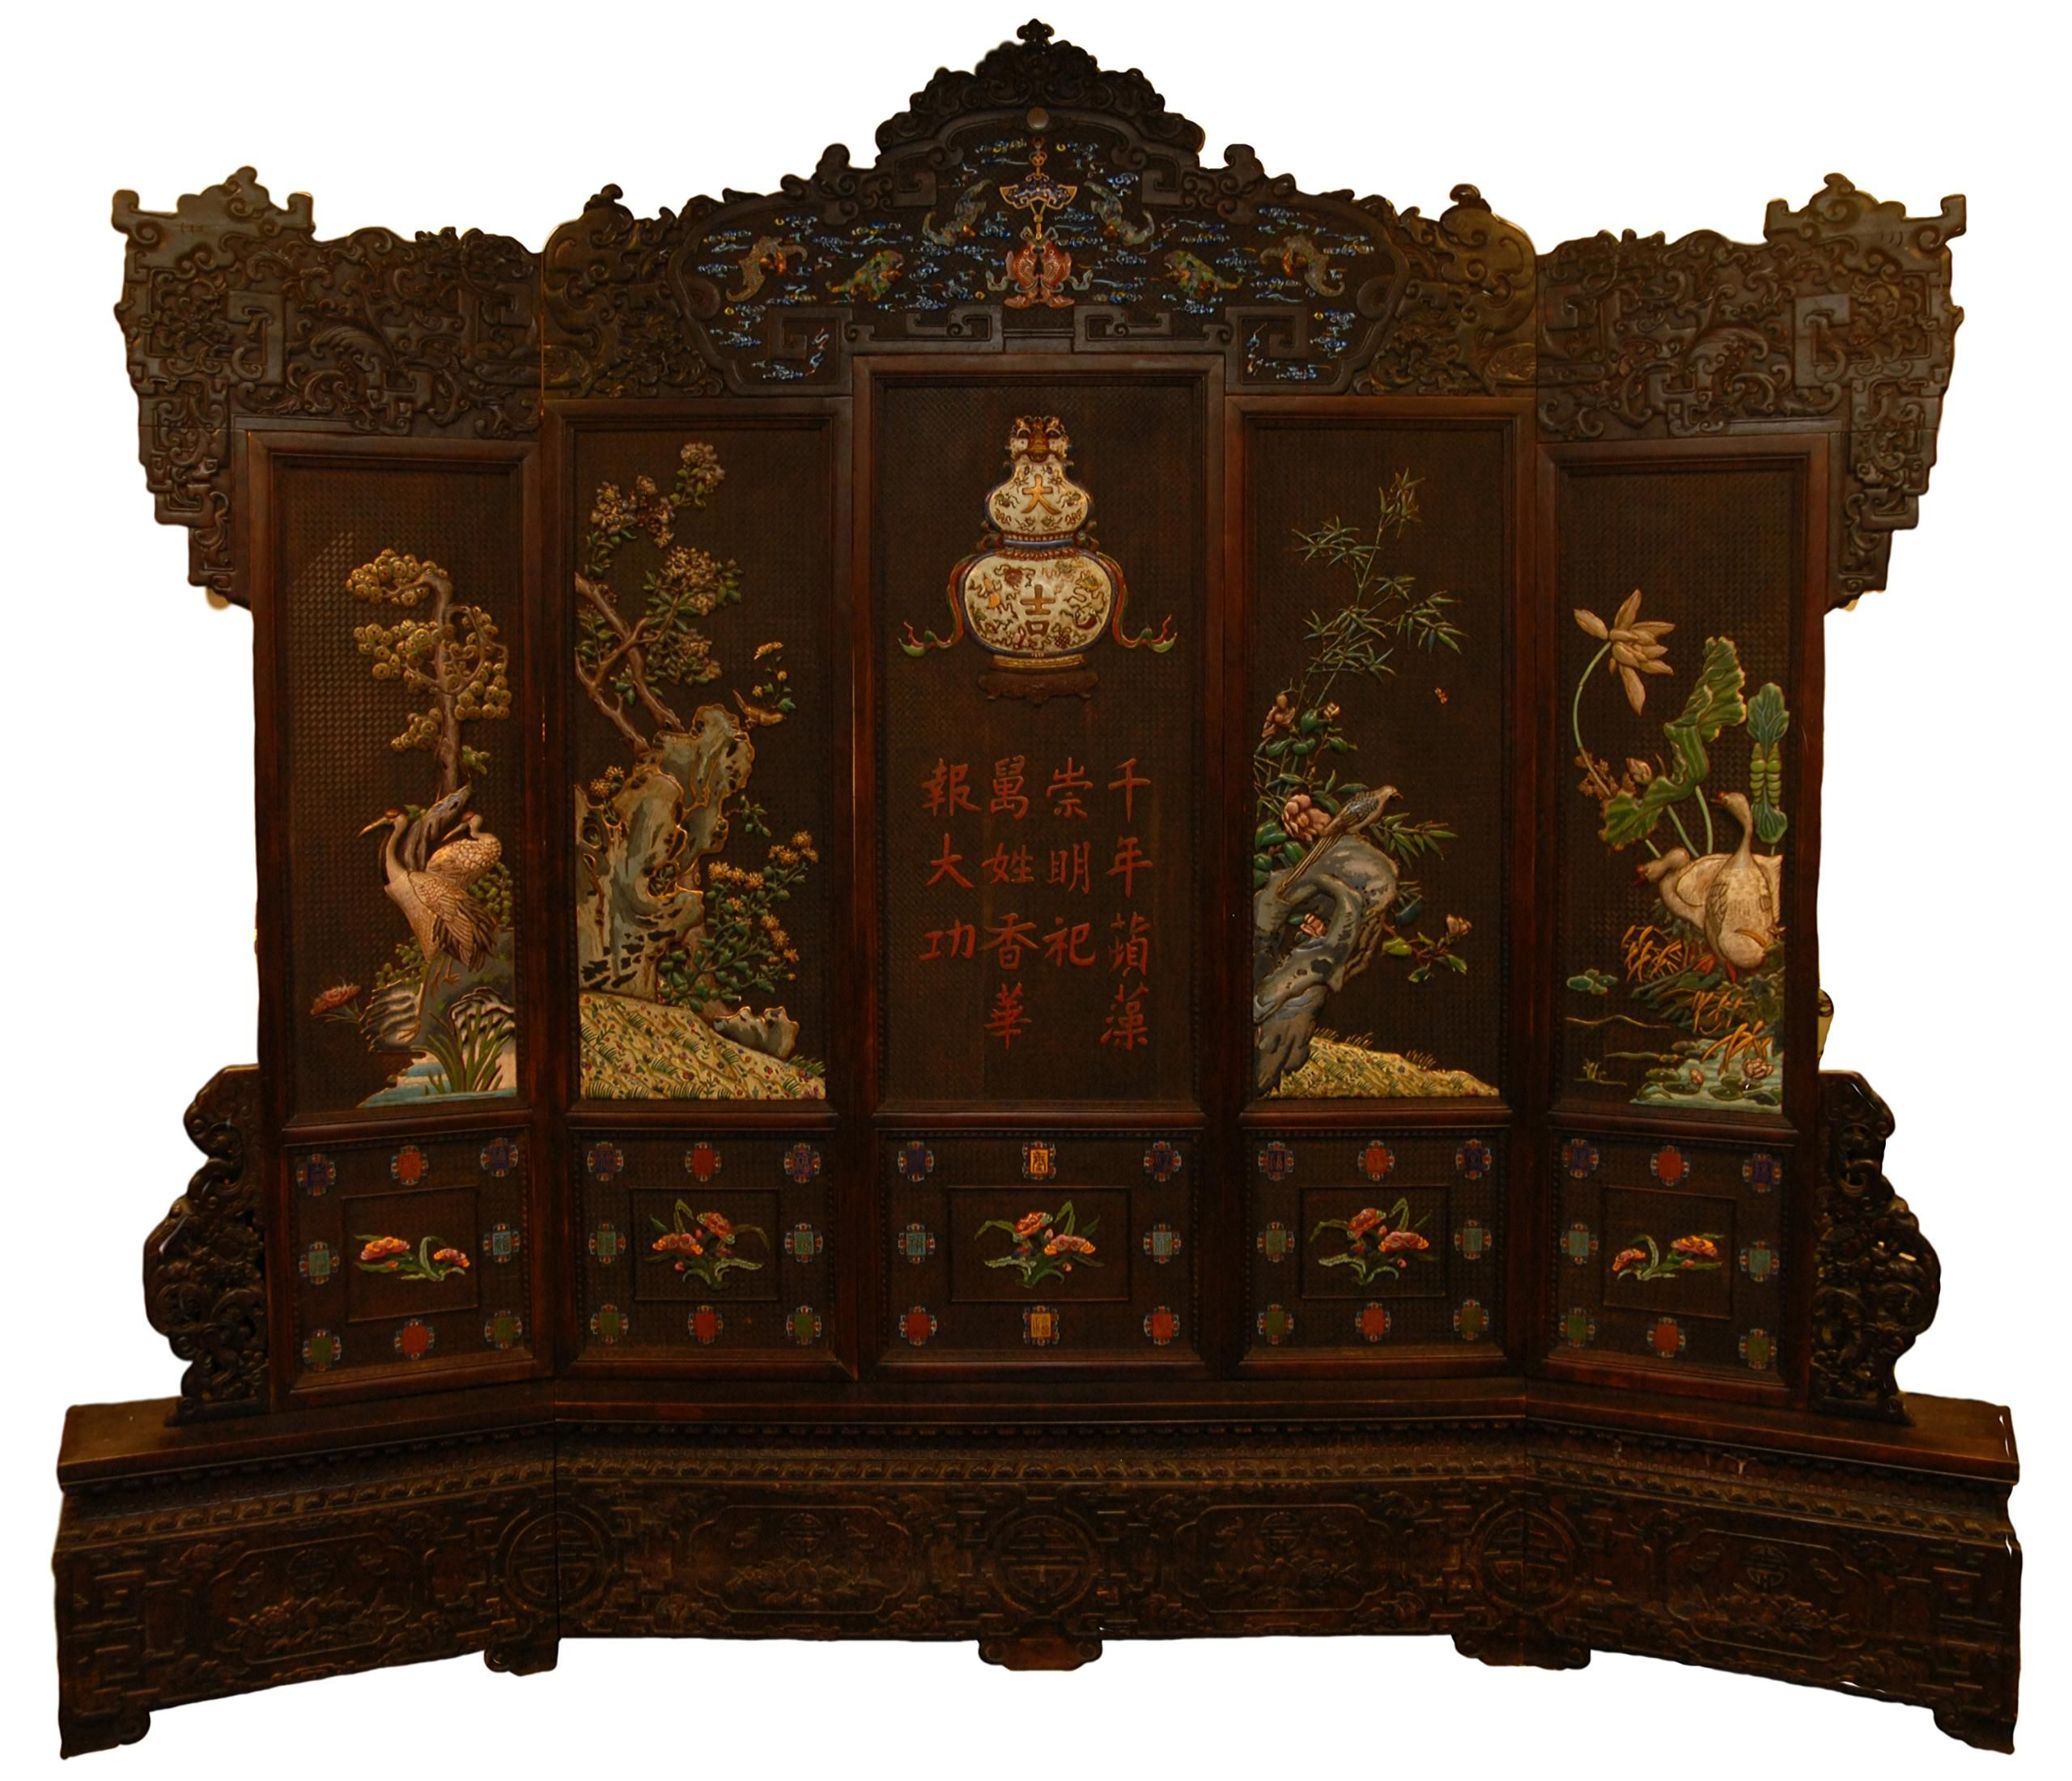 18th c chinese zitan wood imperial throne screen a large 5 panel